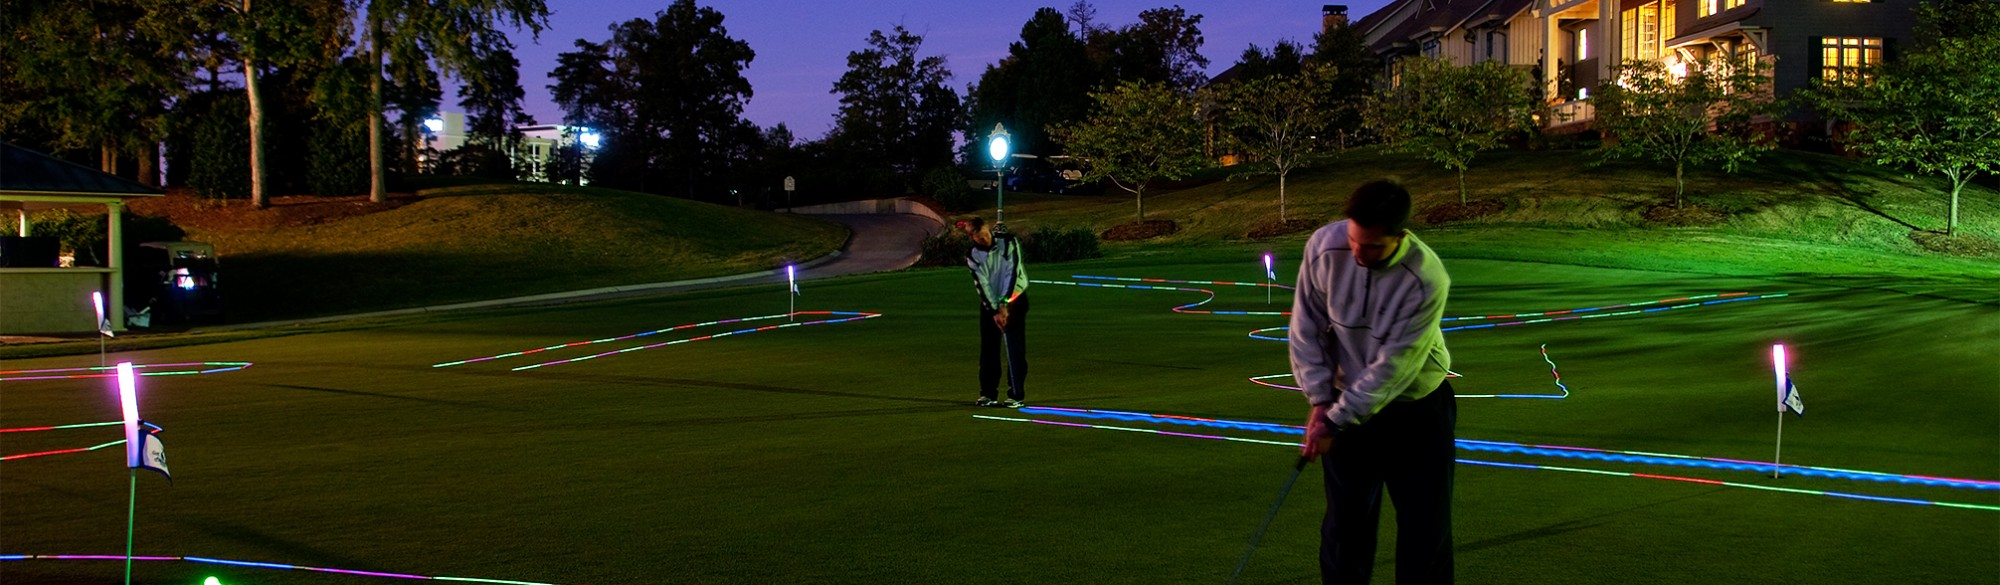 Night Putting at the Ballantyne